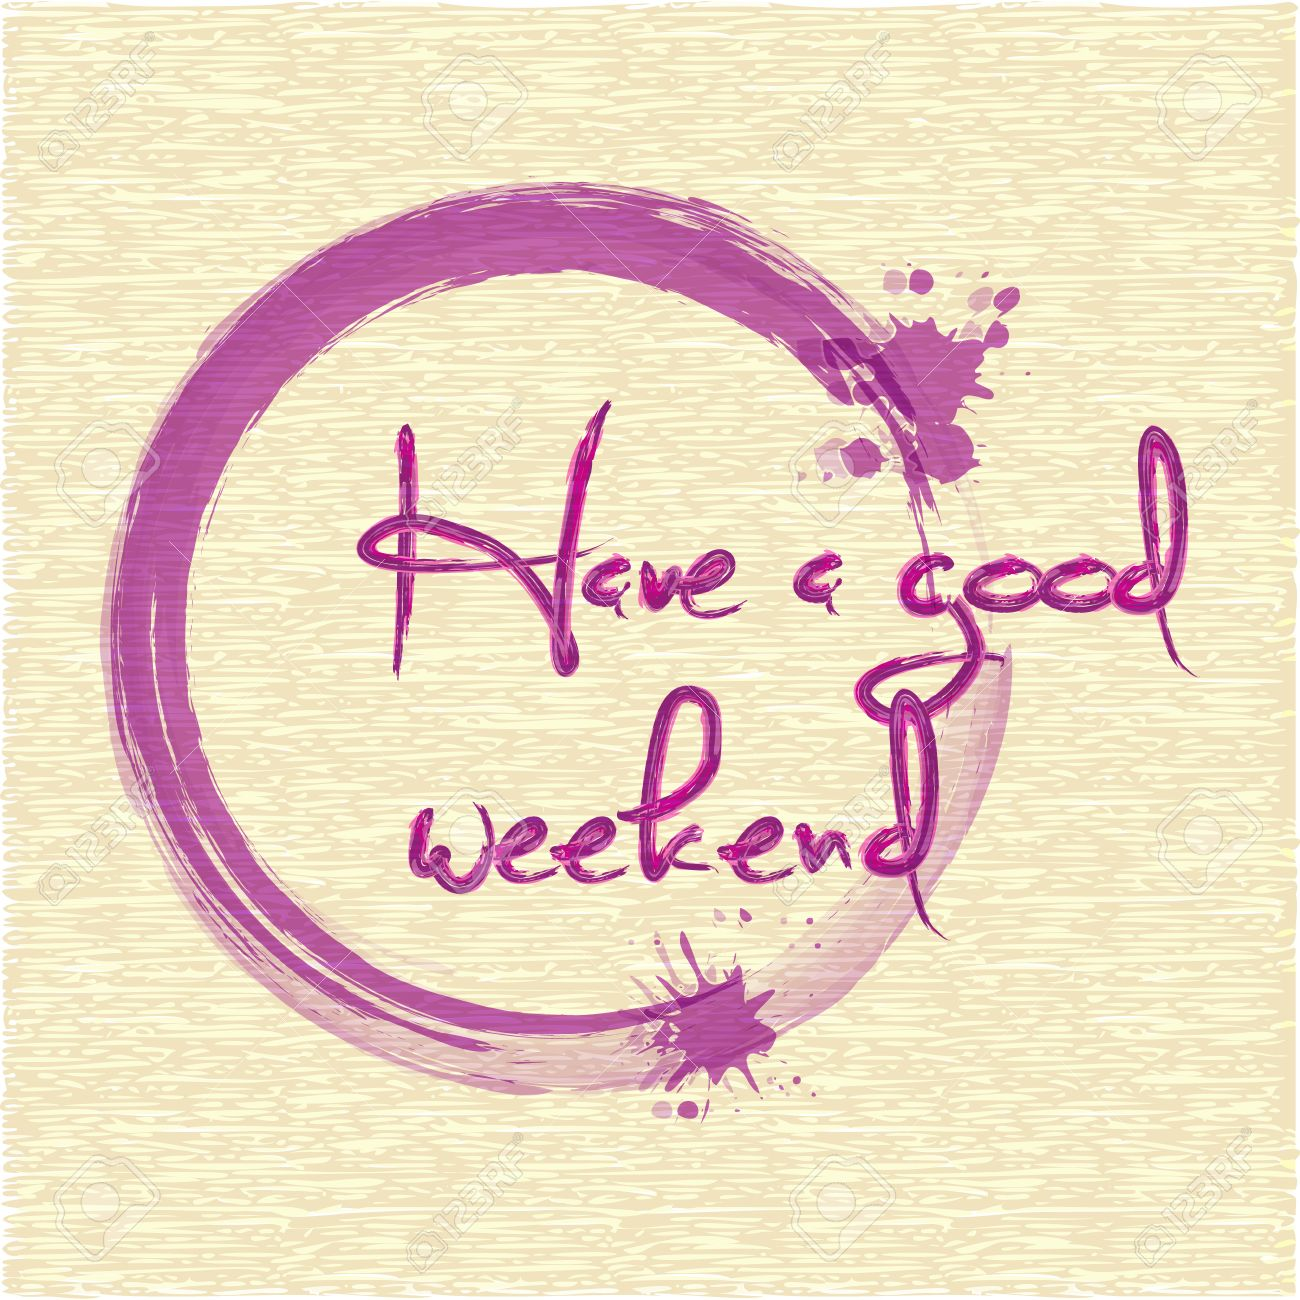 Have A Good Weekend Lettering Brush Watercolor Royalty Free